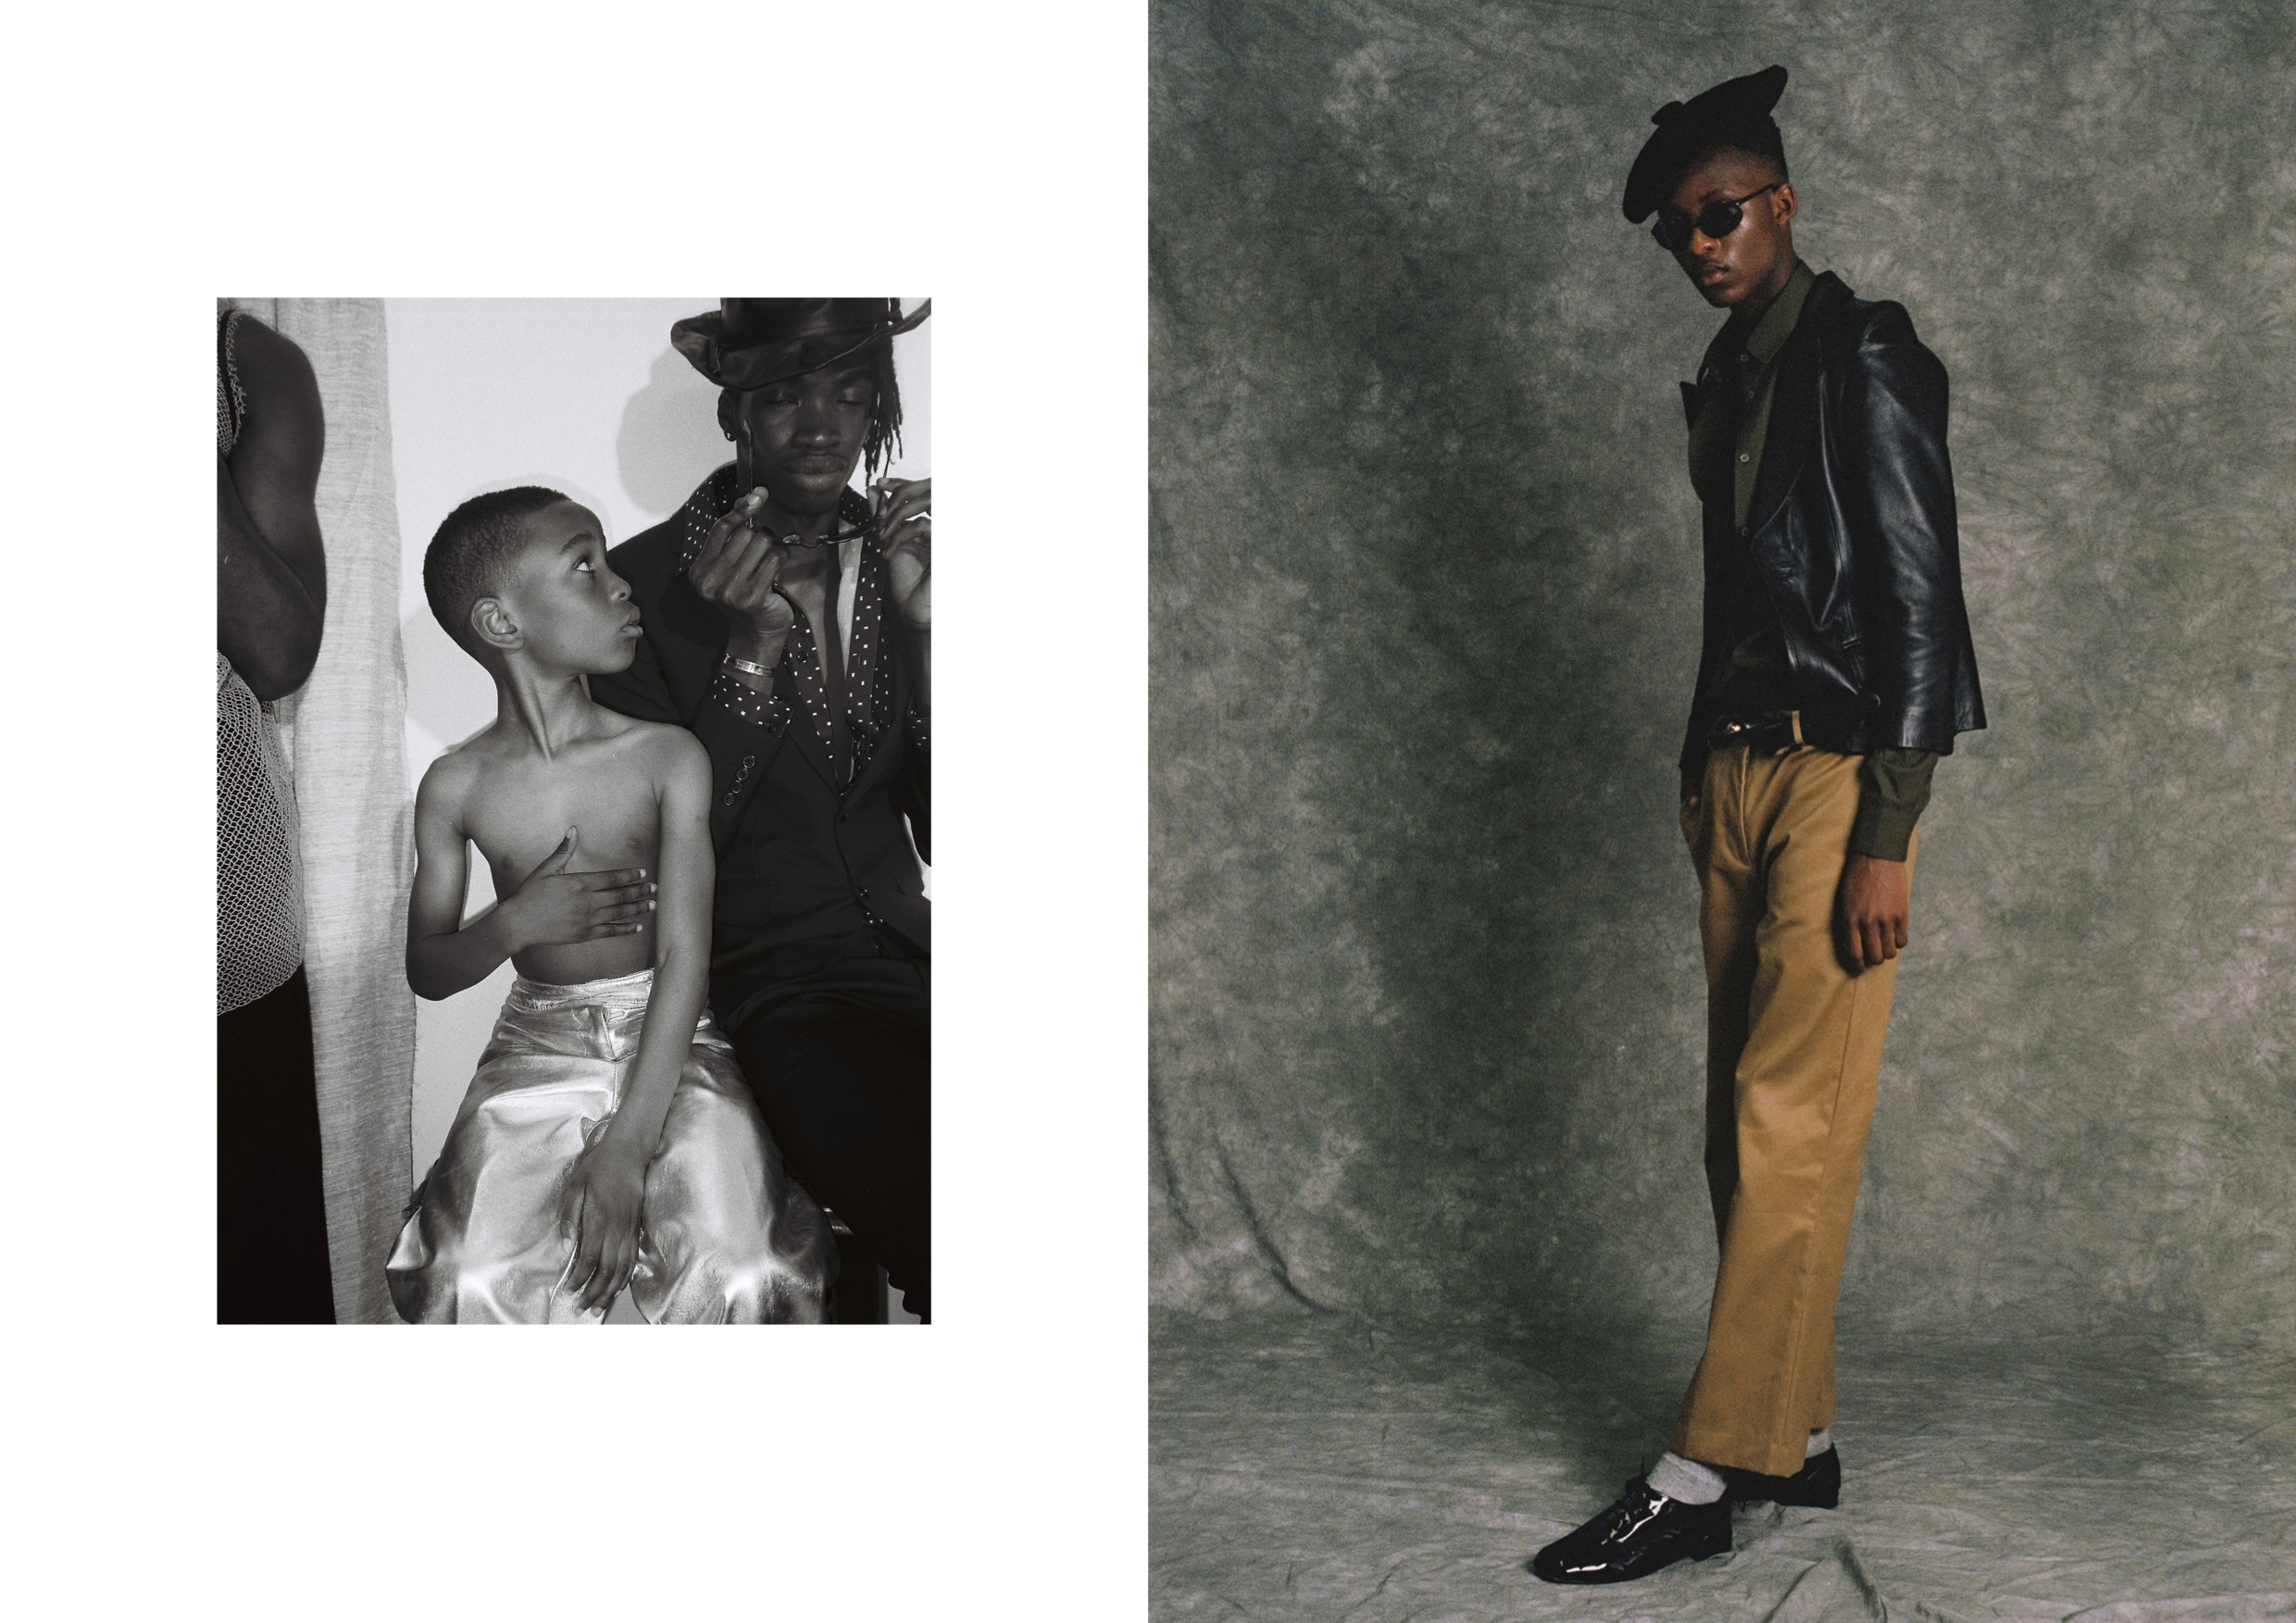 Left: Kyeem wears   Trousers by Gray & Gray from Found & Vision Archive.  Lance wears   Trousers and Jacket by Hedi Slimane for Saint Laurent, Shirt by Acne,Hat stylist's own,   Sunglasses by Careera from Rokit Vintage.  Right: Rabbi wears   Trousers and Shirt by Acne, Jacket Vintage Jaeger from Found and Vision Archive,   Shoes by Repetto , Hat,Belt stylist's own and Sunglasses by Careera from Rokit Vintage.